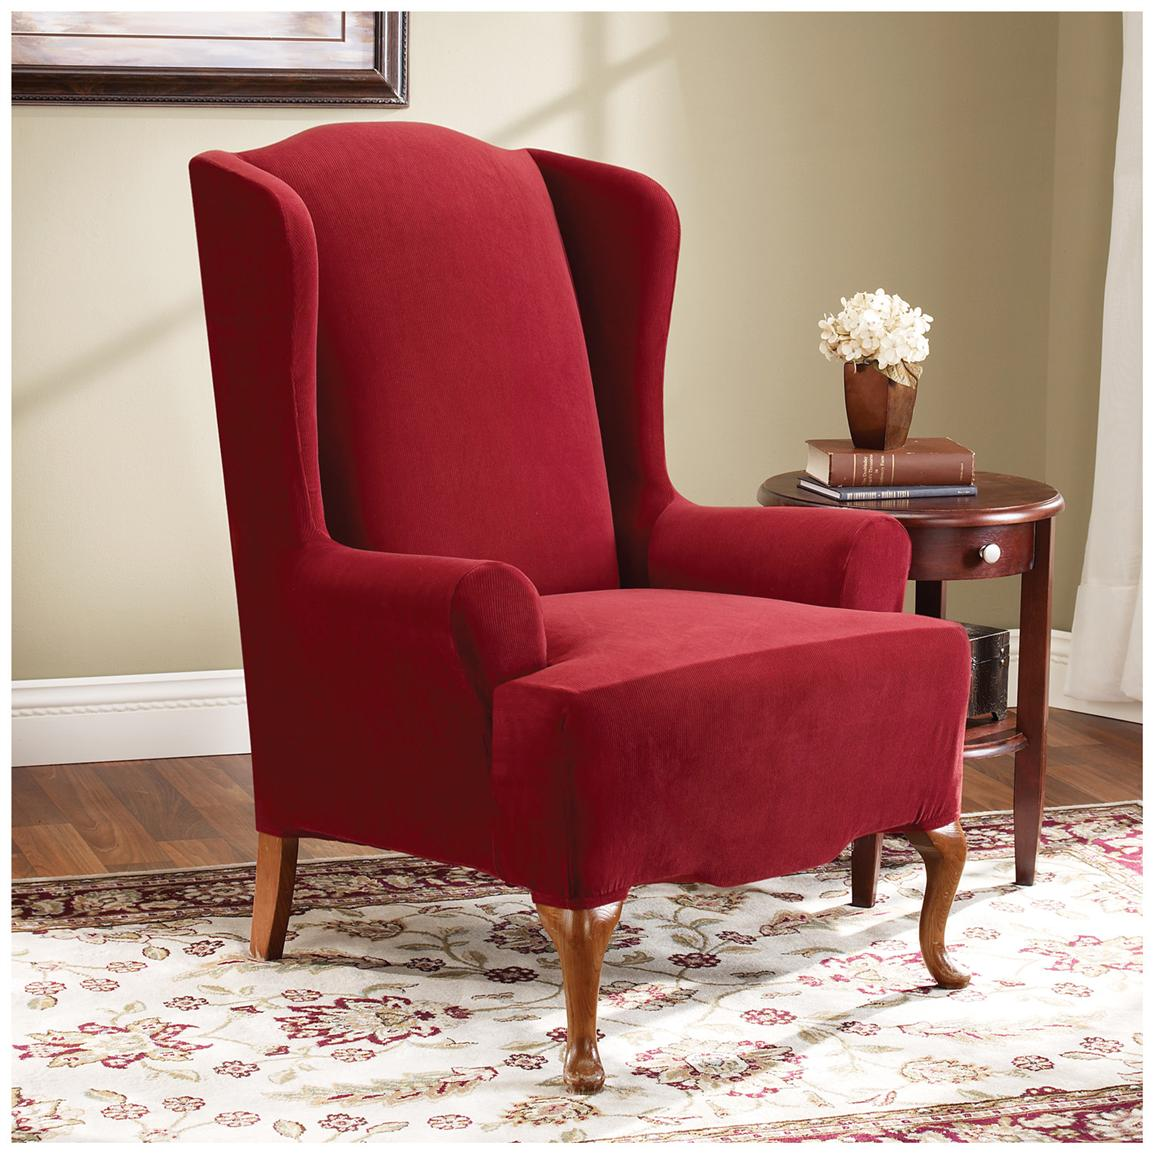 Chairs Covers Wingback Chair Slipcover For Comfortable Seating Homesfeed